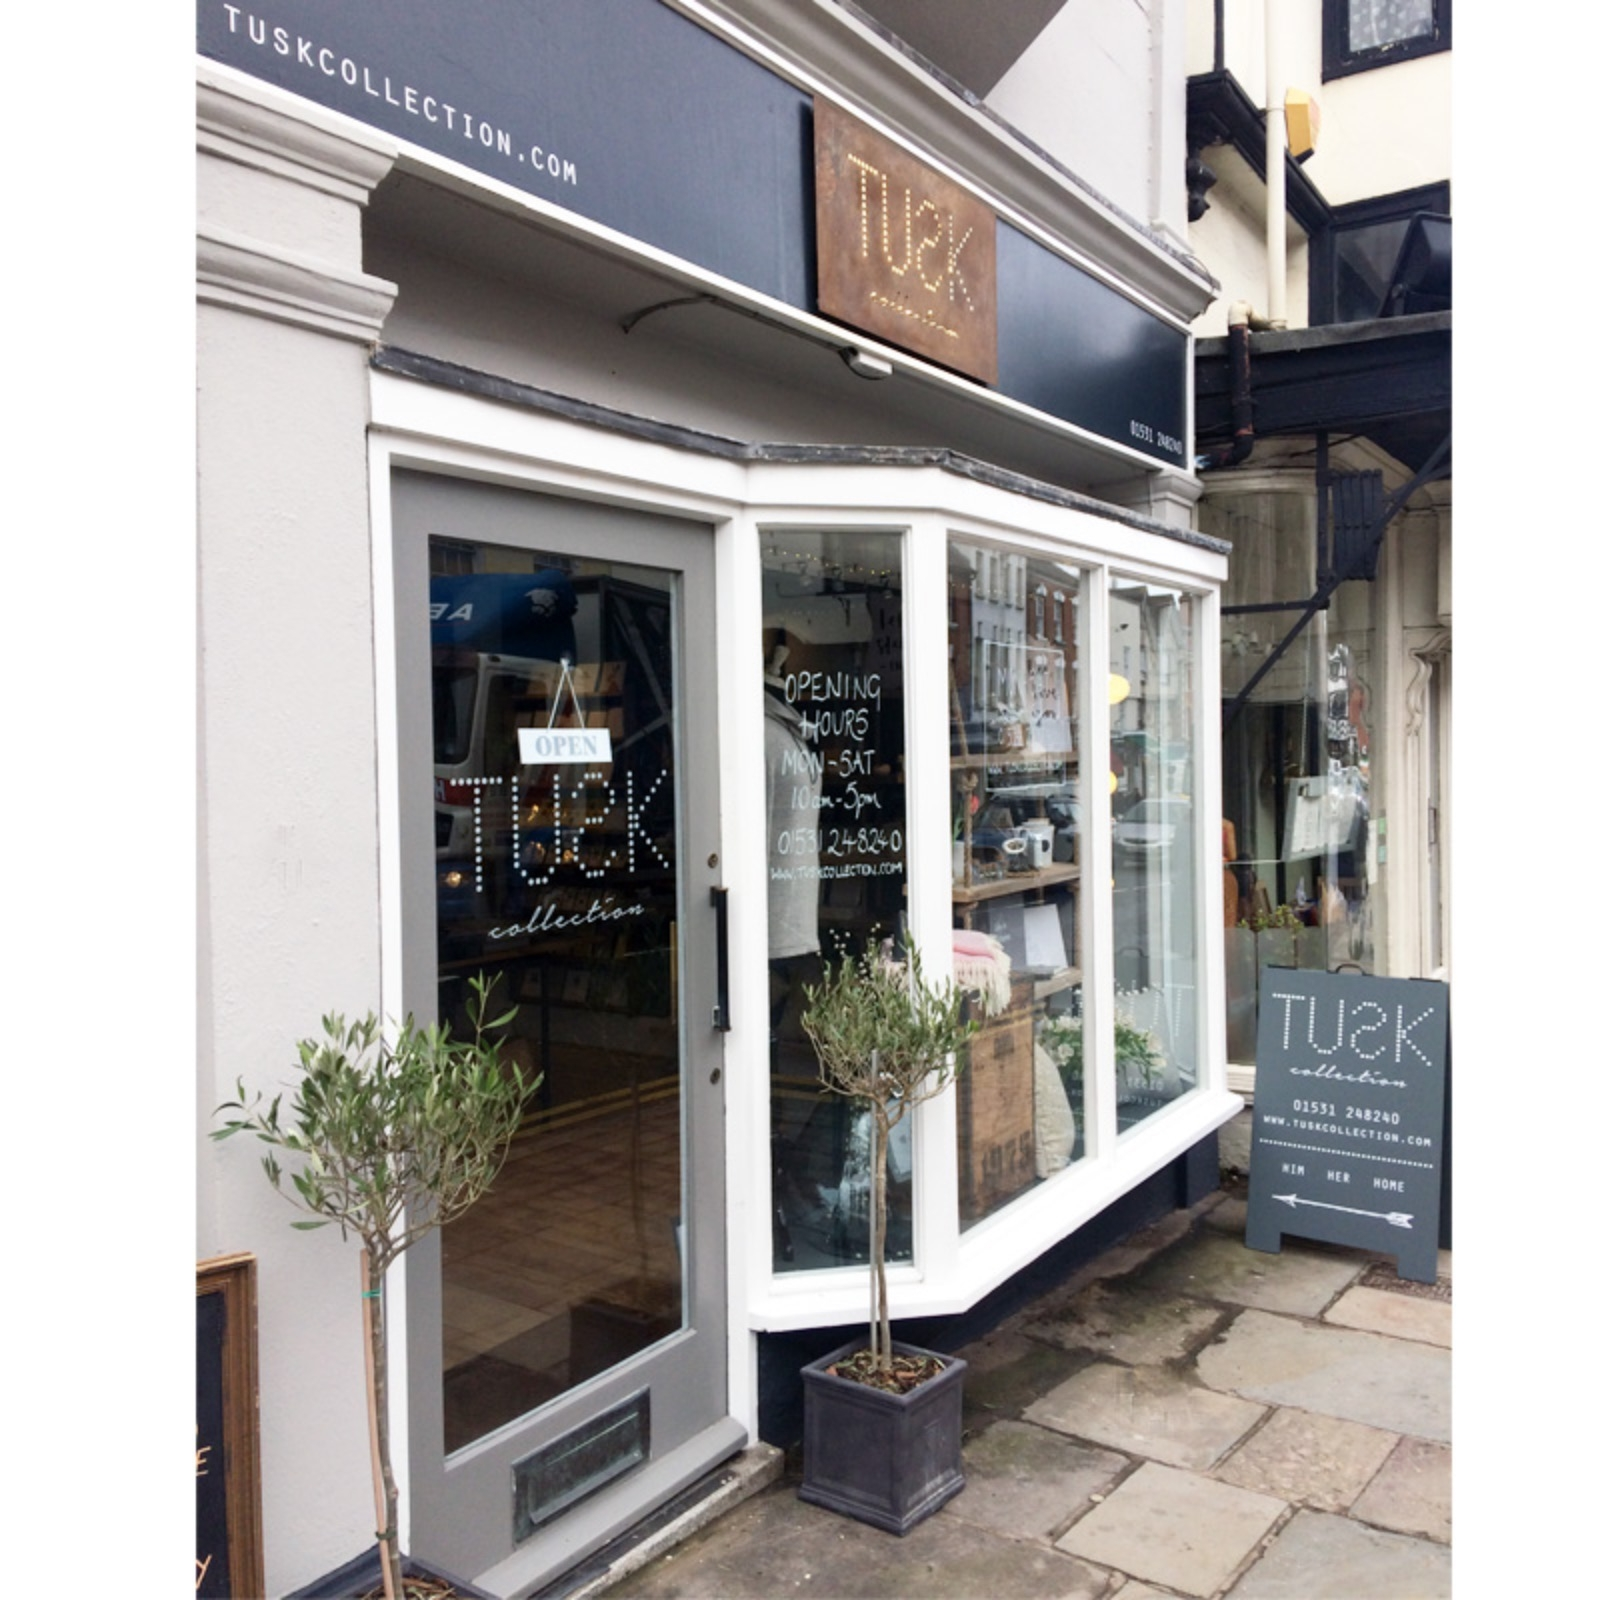 TUSK collection shop Ledbury